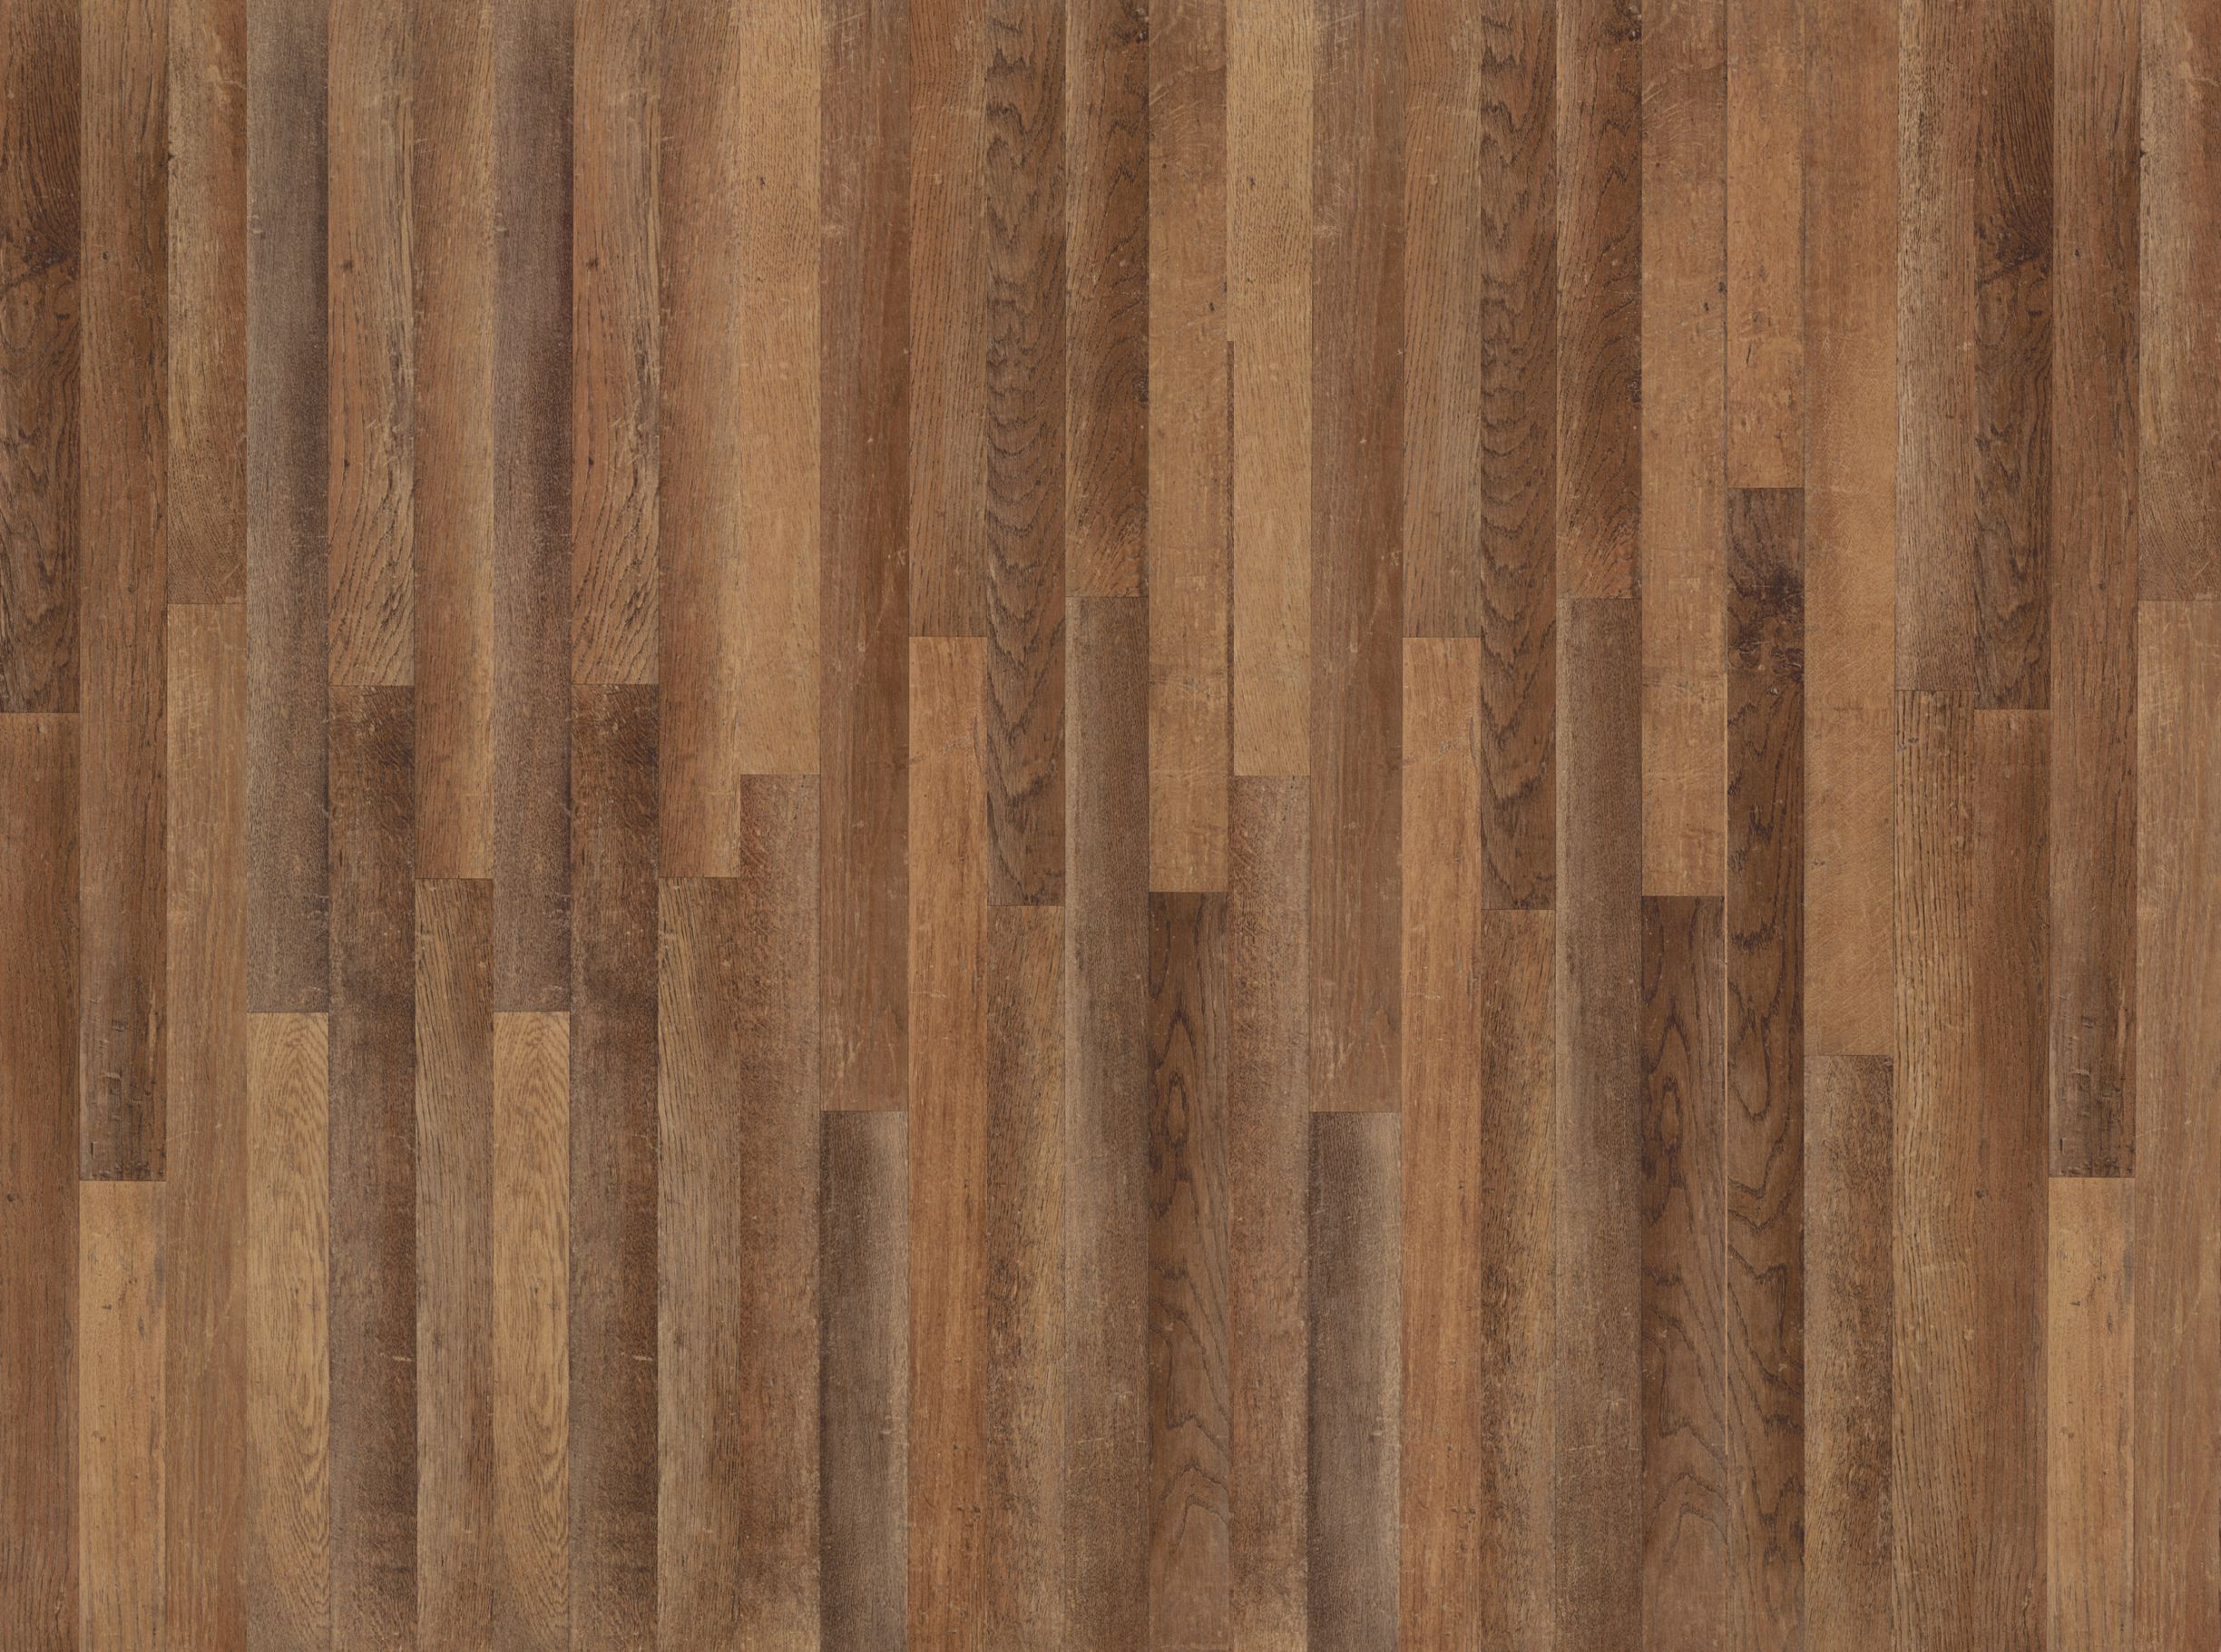 Bamboo hardwood flooring glossy brown linoleum flooring hard wood wood flooring dailygadgetfo Images